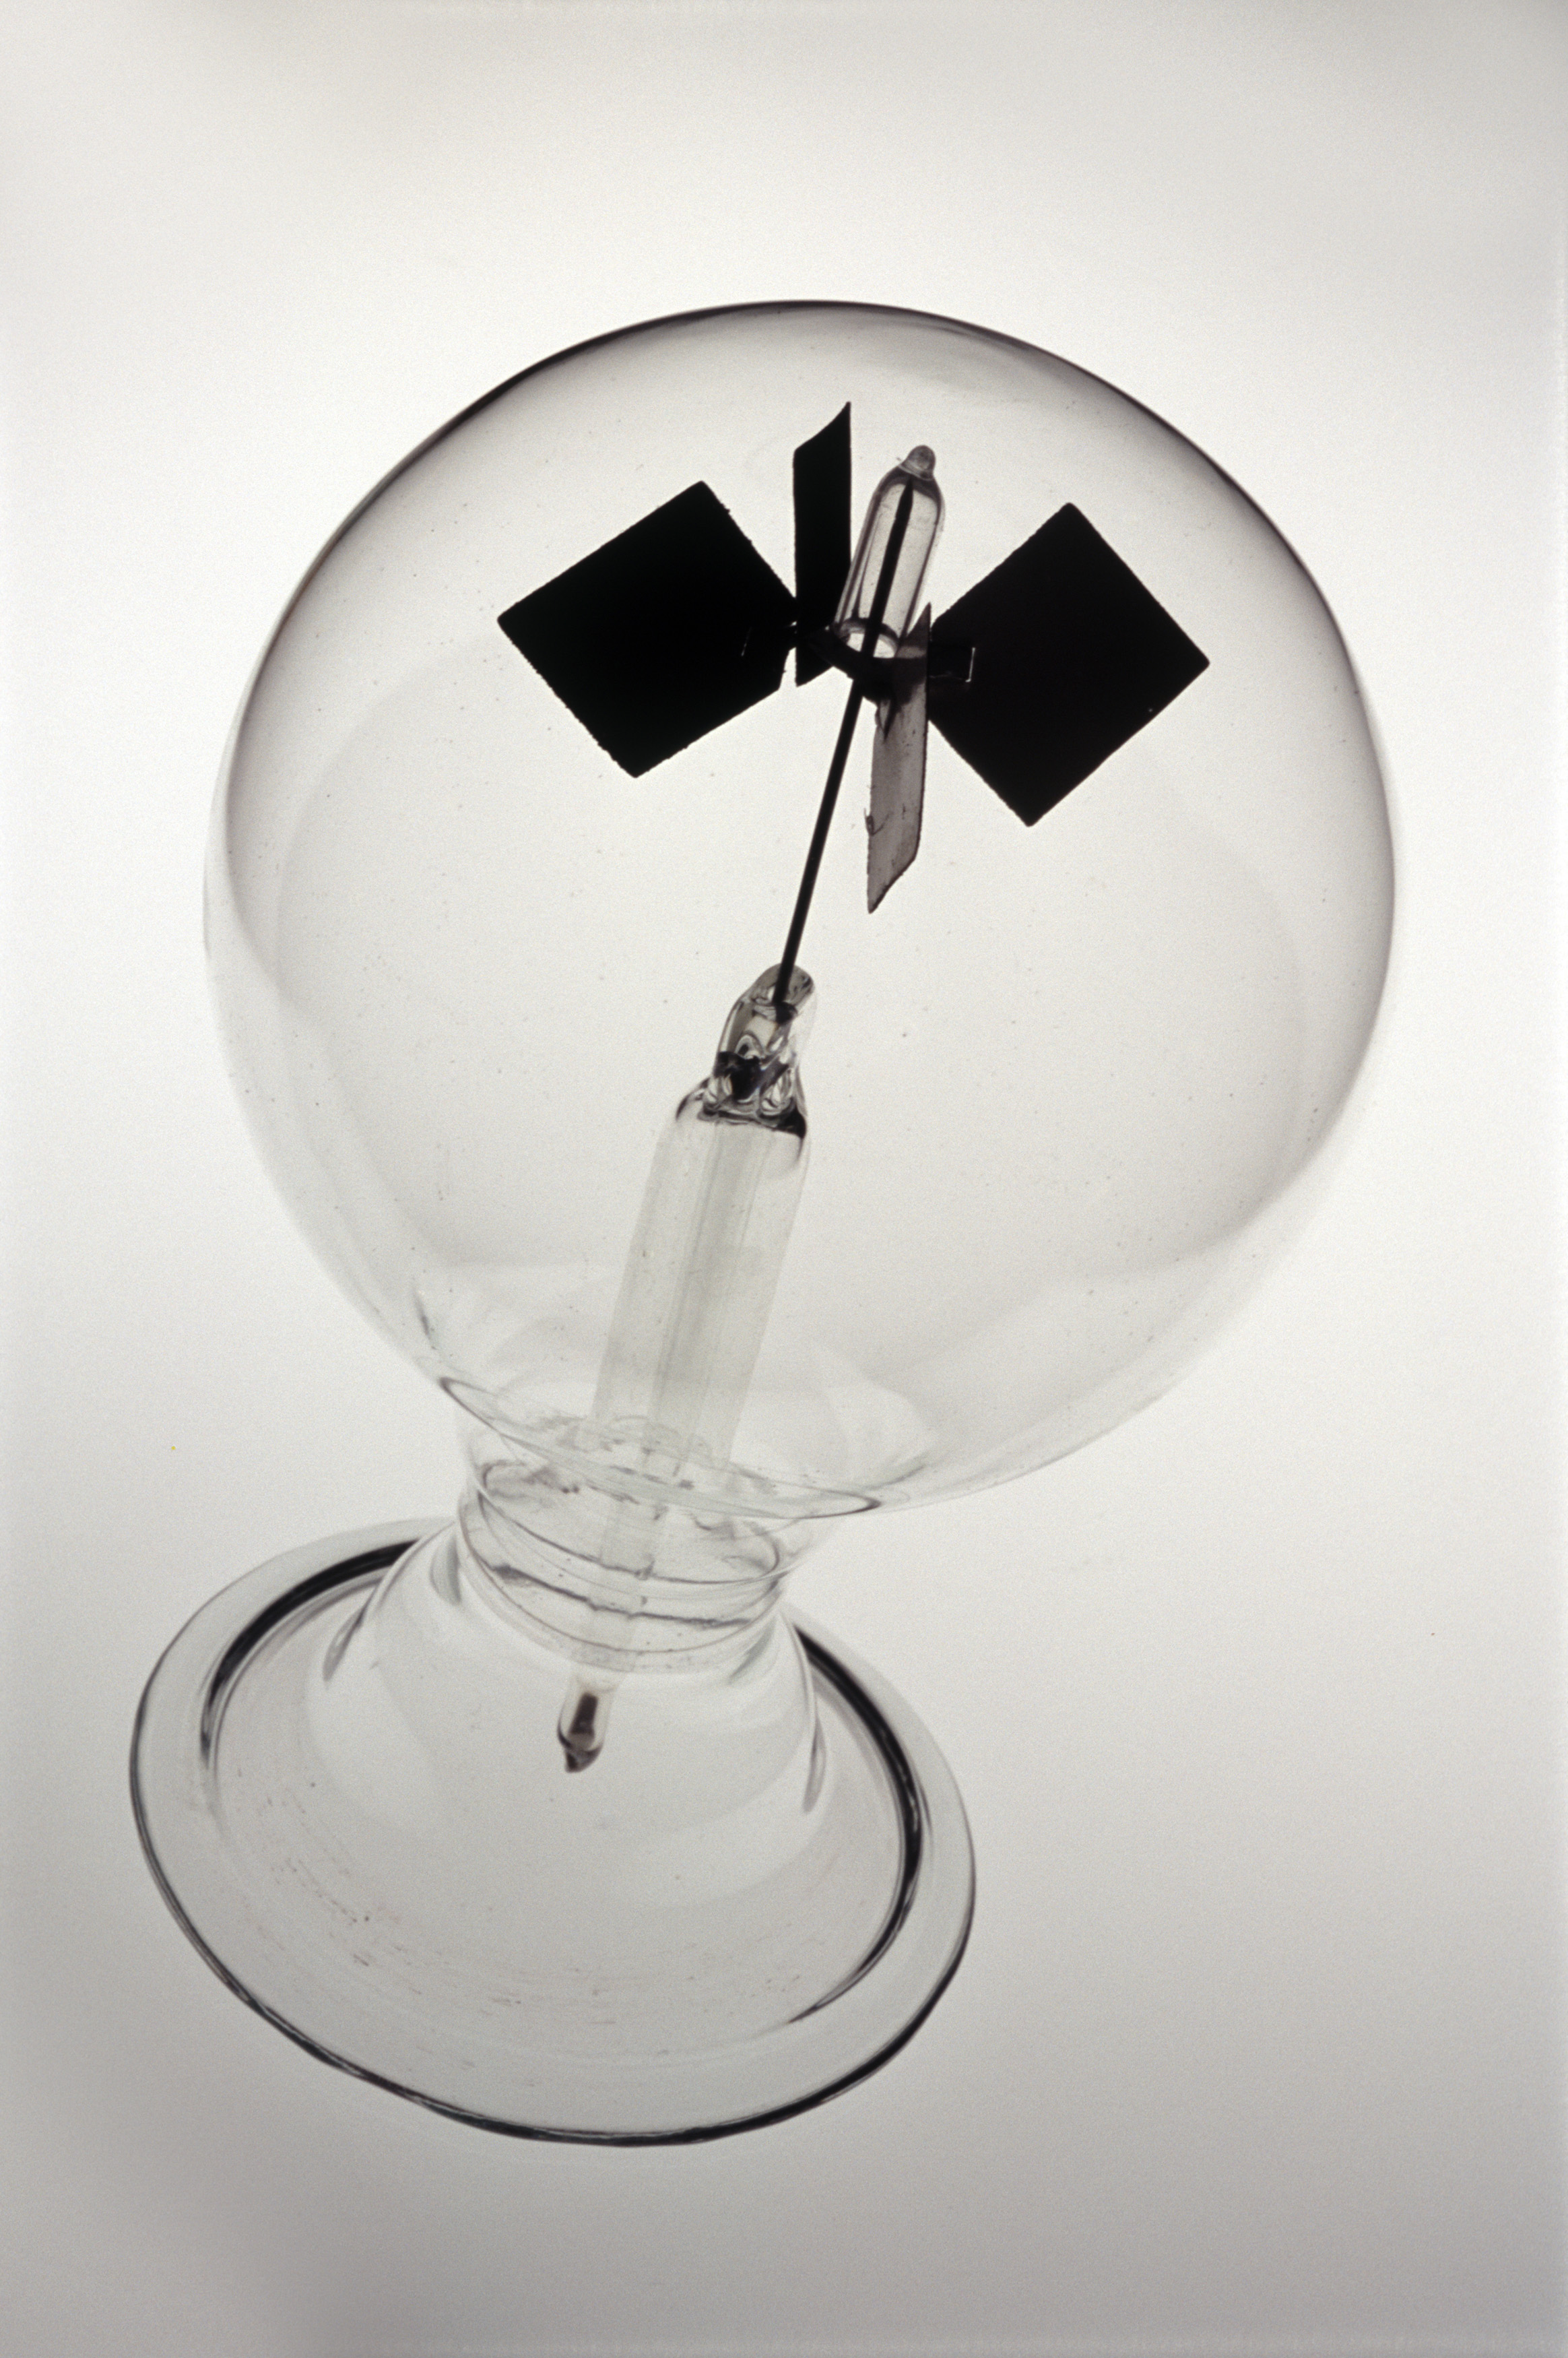 Crookes radiometer or light mill is an airtight globe with a partial vacuum, light falling on the blades of the willdmill in the centre causes them to rotate